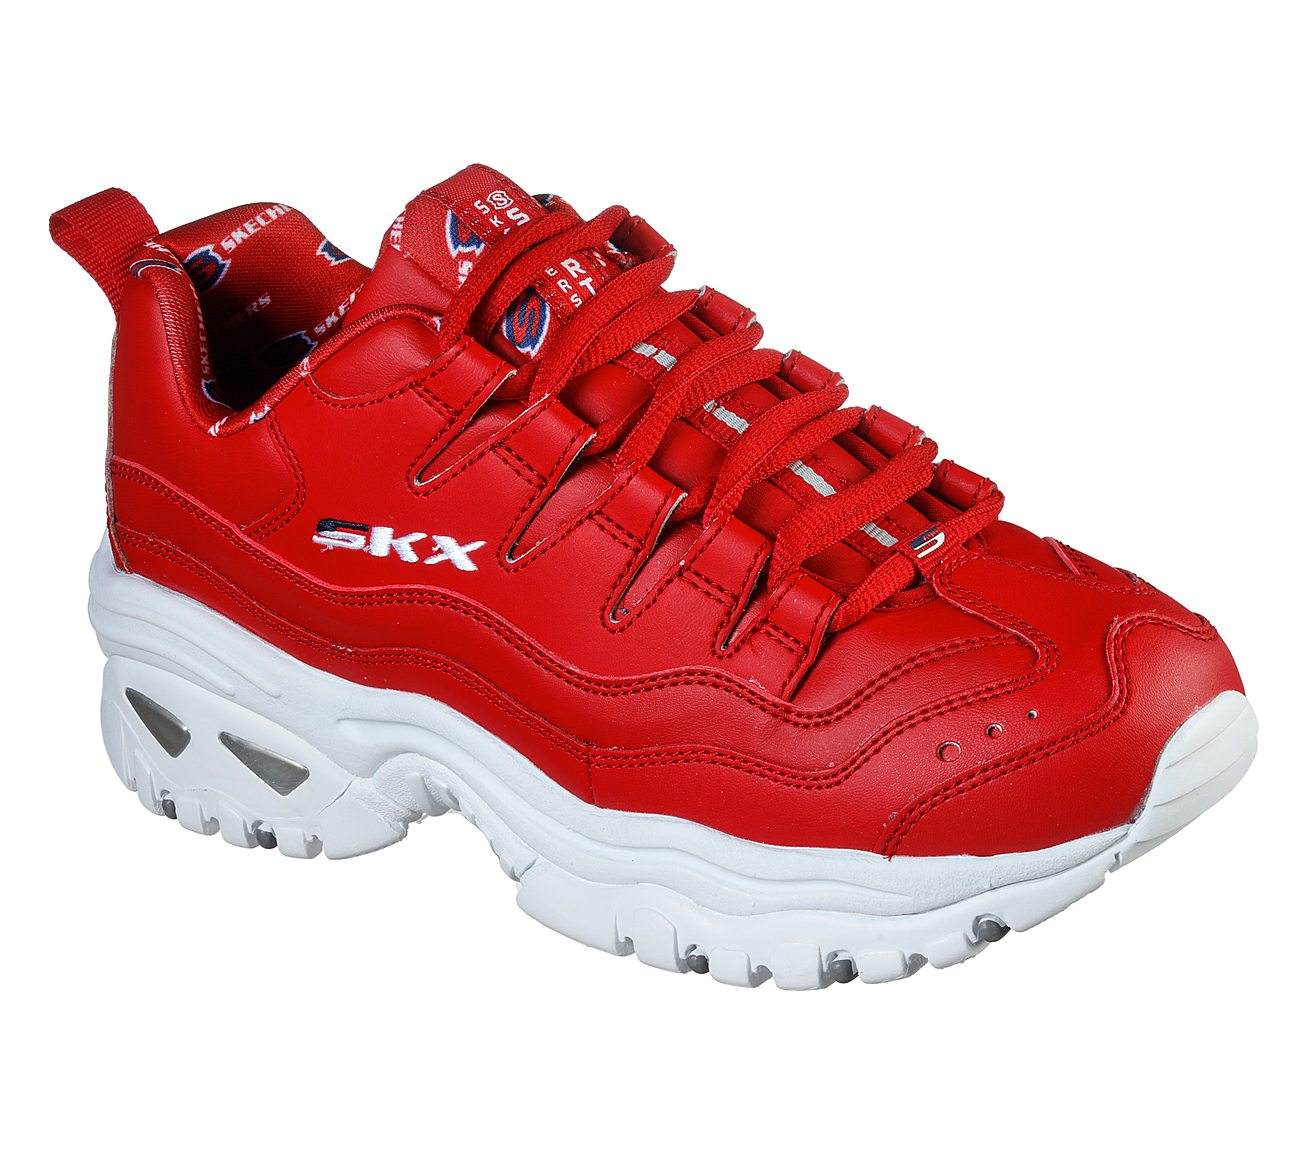 skechers skx shoes